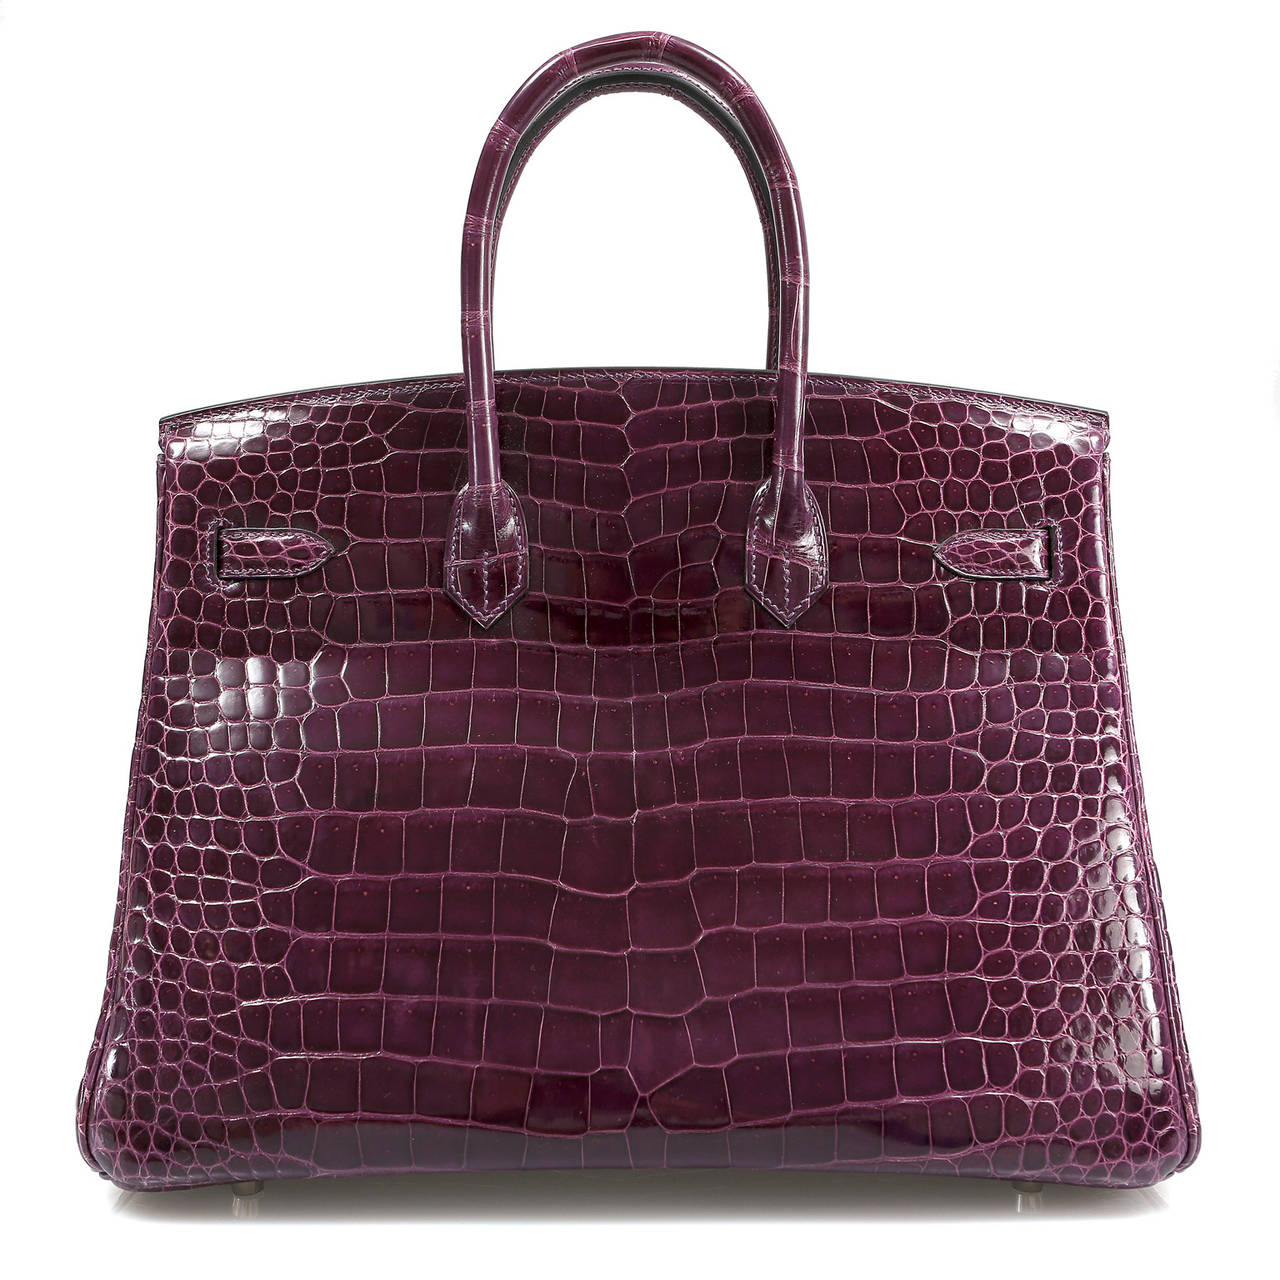 Hermès Cassis Shiny Porosus Crocodile 35cm Birkin has never been carried and remains totally pristine.  Incredibly rare and specially ordered, this exotic Birkin is truly stunning in jewel toned purple croc with Palladium hardware. 